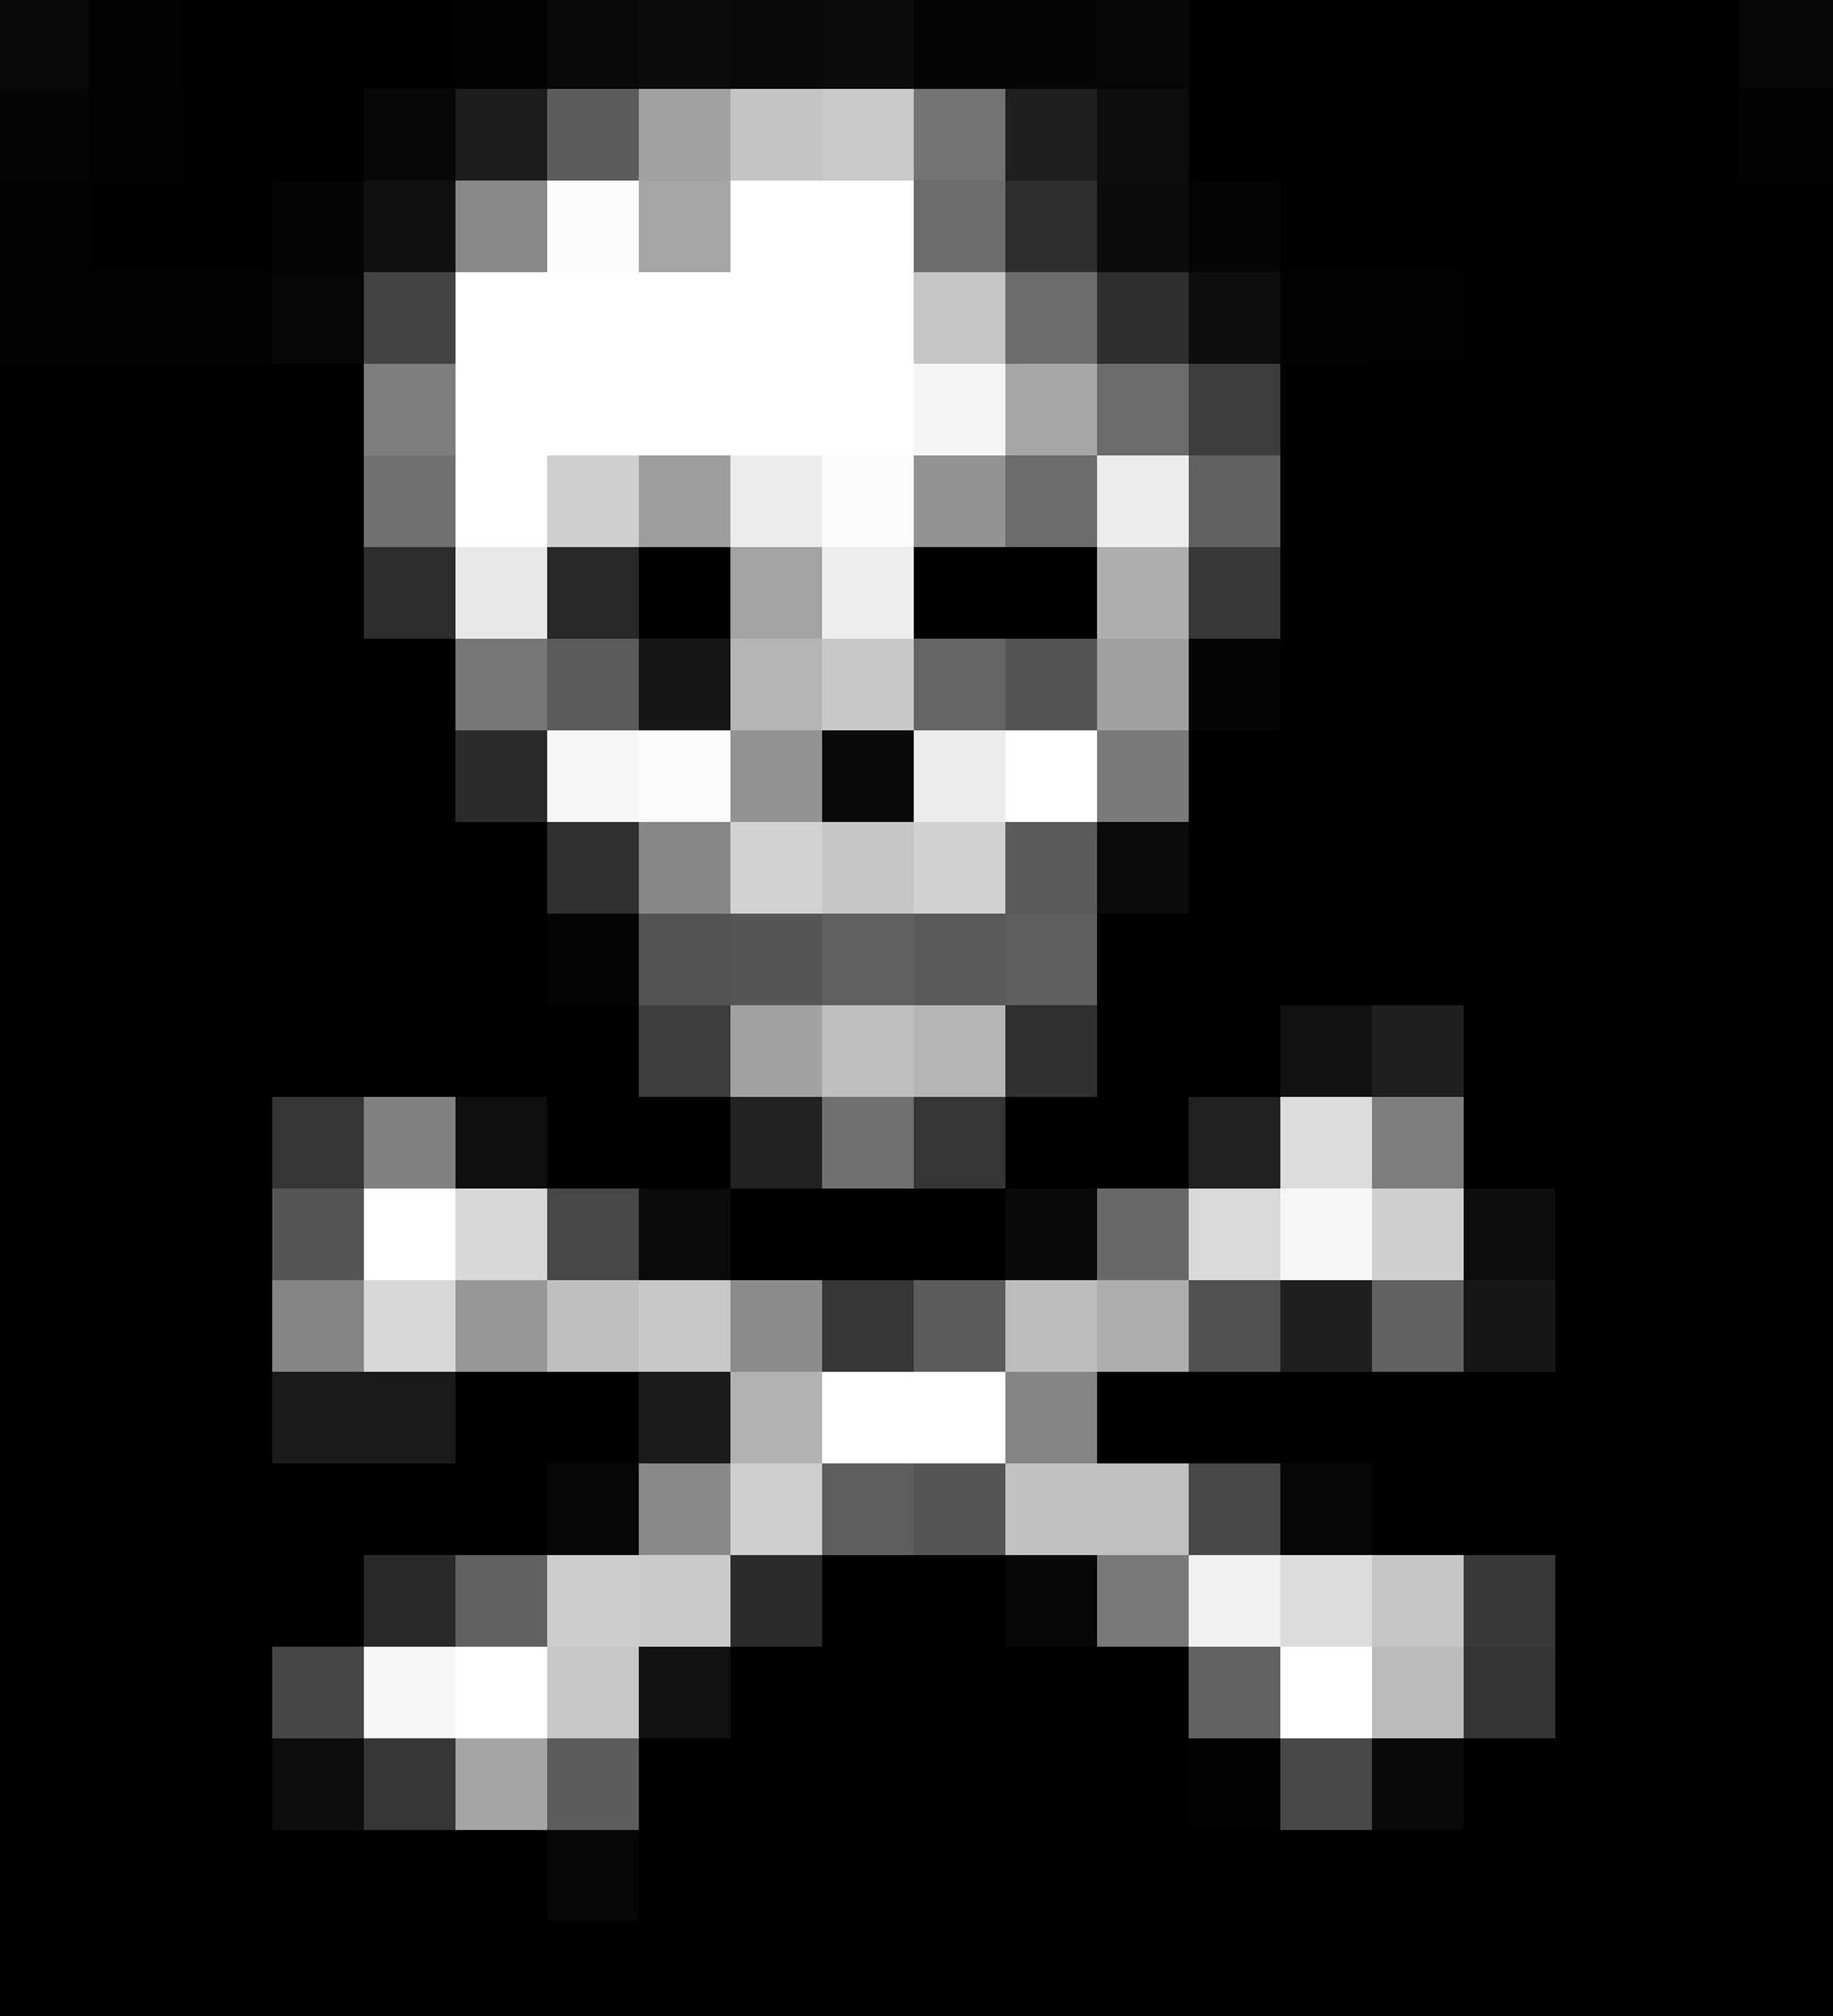 skull shape in an 8bit style digital image with large pixels